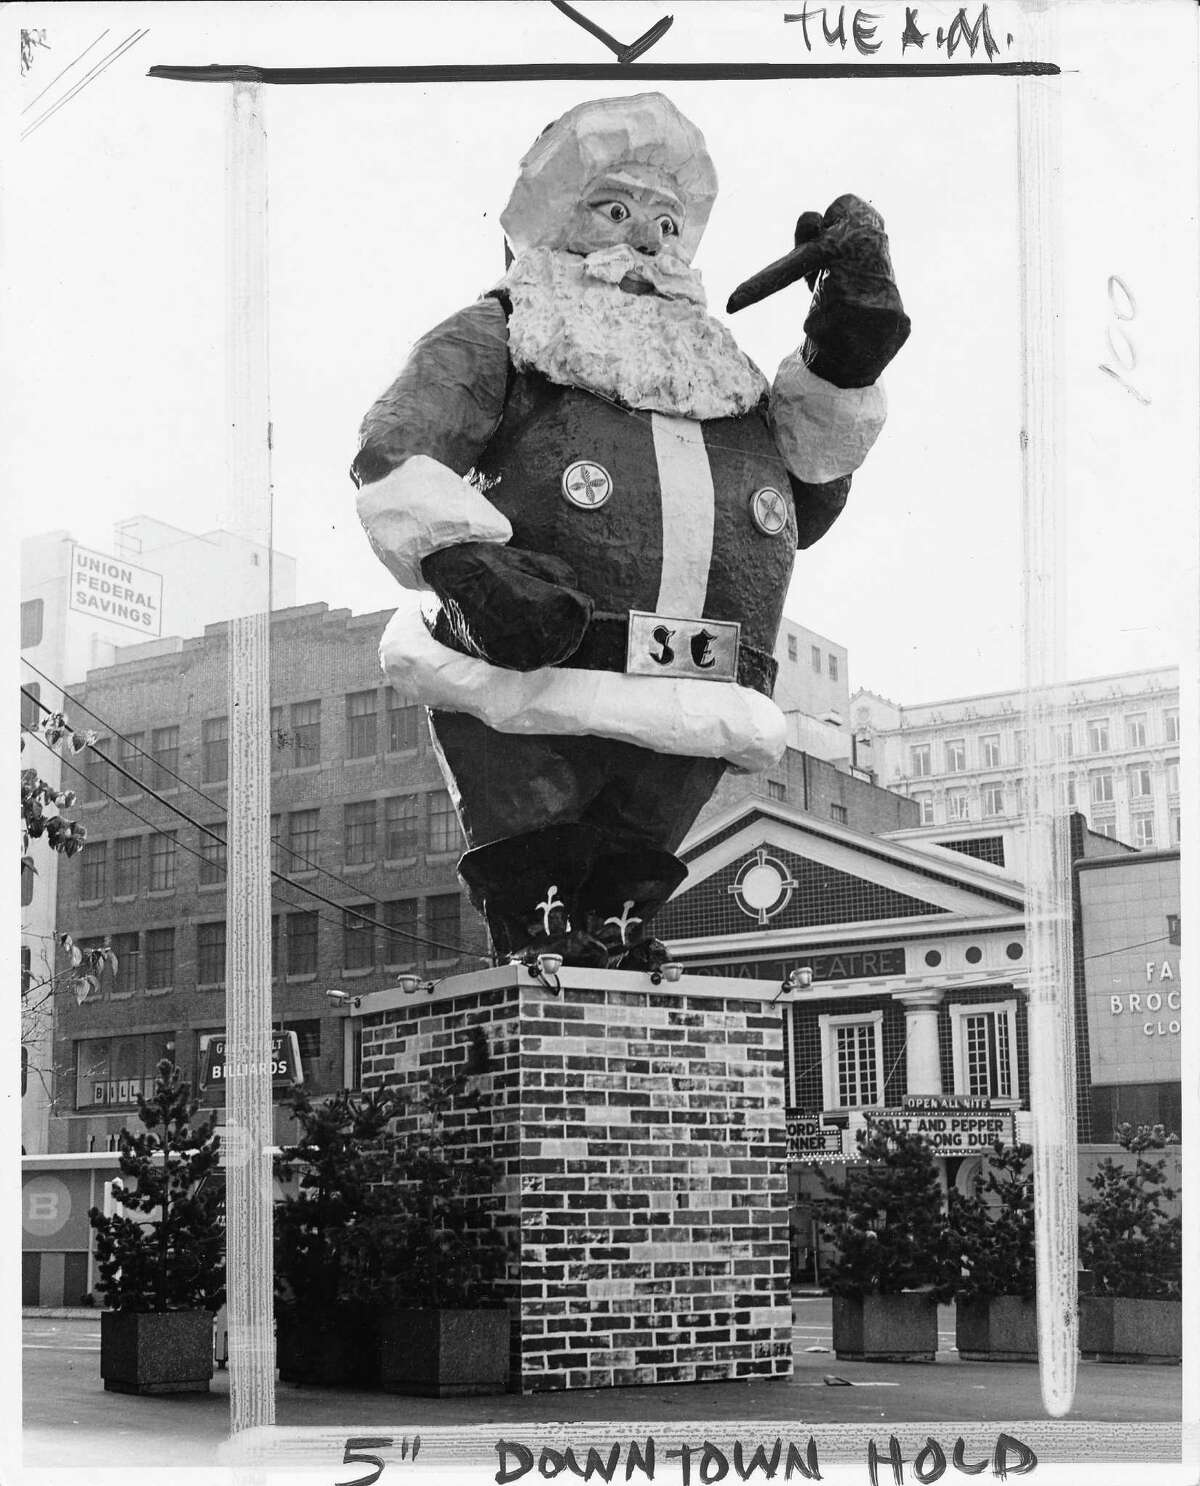 It was this 42-foot, pipe-smoking Santa, who came out every Christmas on Westlake Avenue, from roughly the '60s to '70s.  Photo: Nov. 25, 1973.